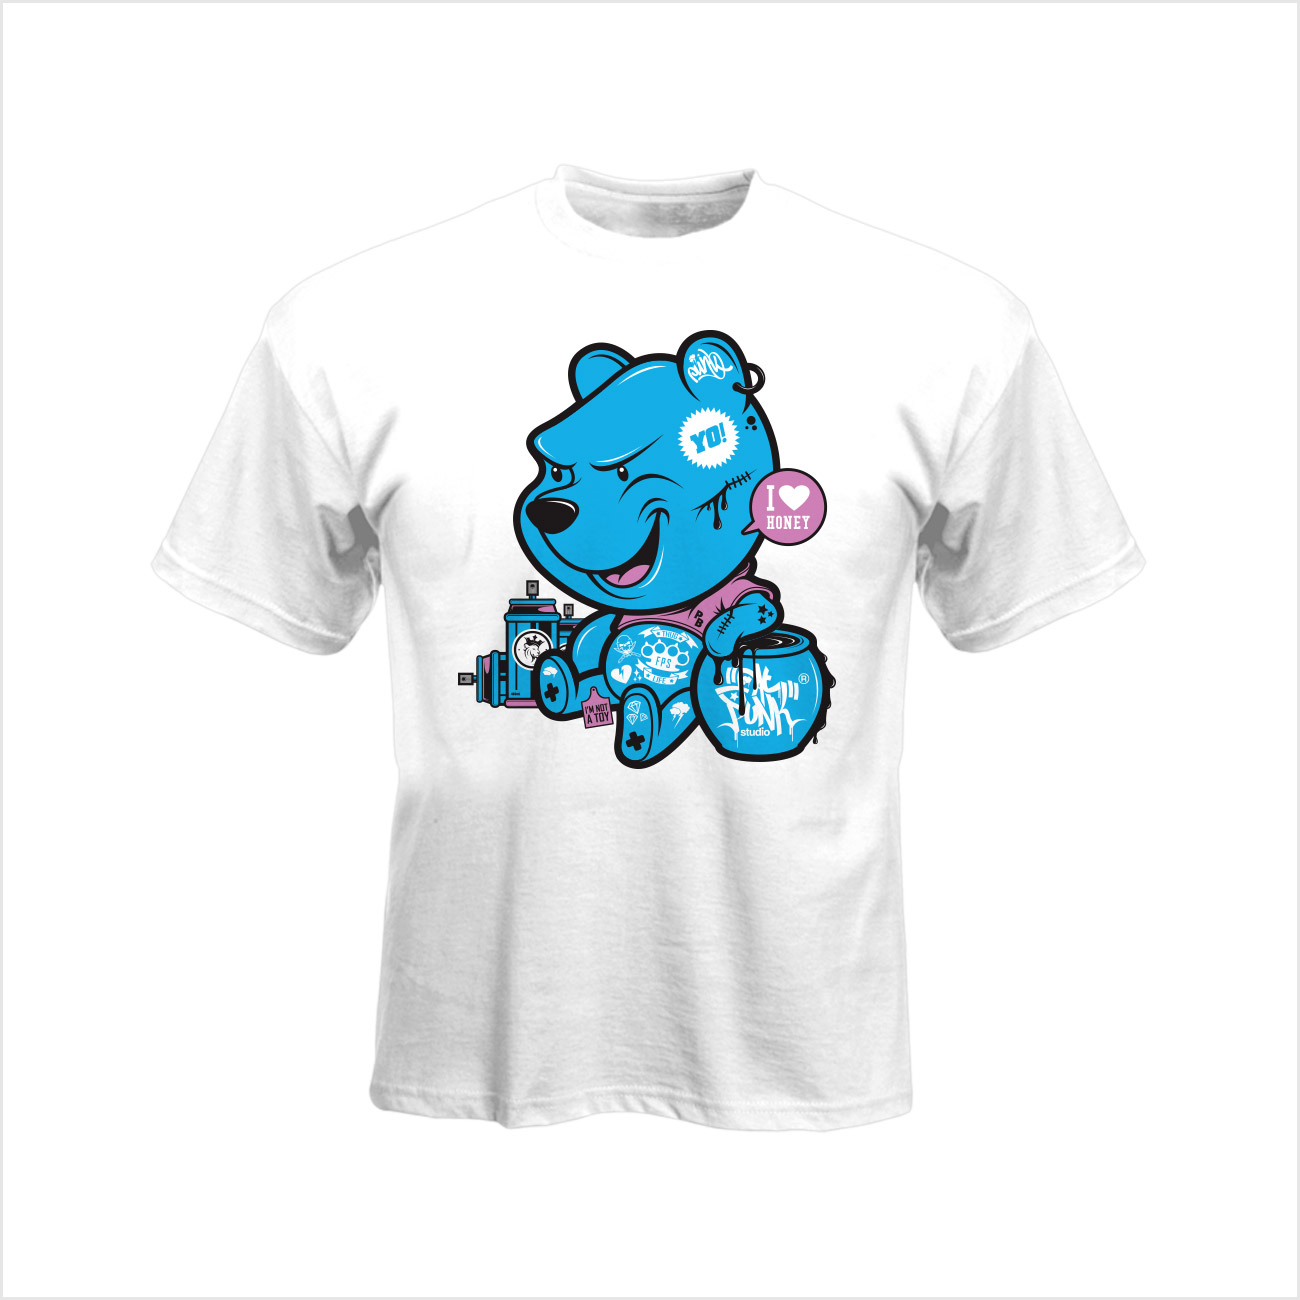 fat-punk-studio-pooh-bear-thug-life-t-shirt-white-01